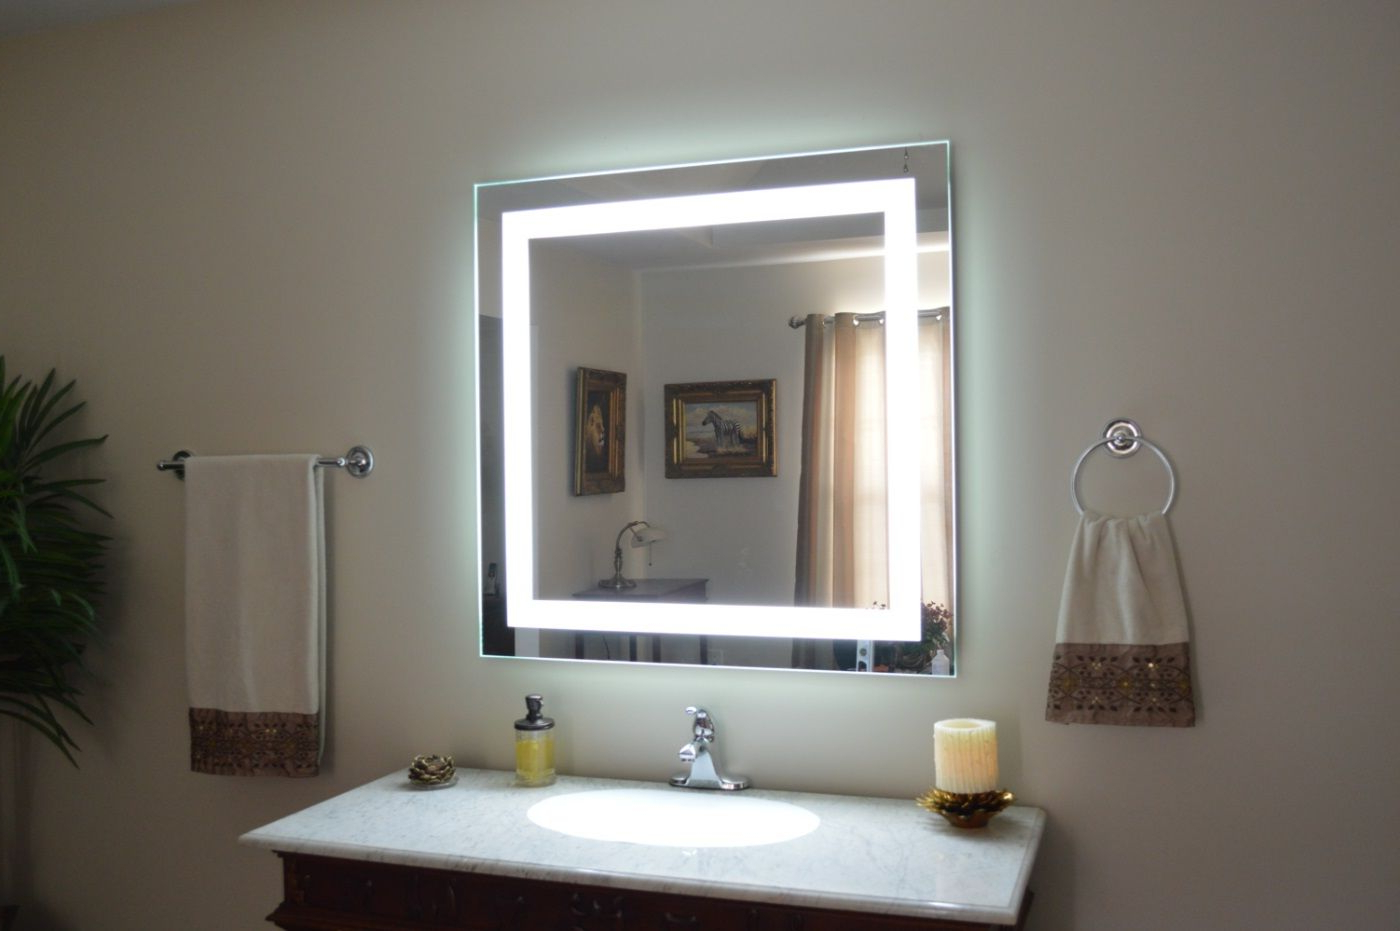 Astonishing Beveled Wall Mirror Bathroom Lights Cabinet Pertaining To Recent Light Wall Mirrors (View 6 of 20)